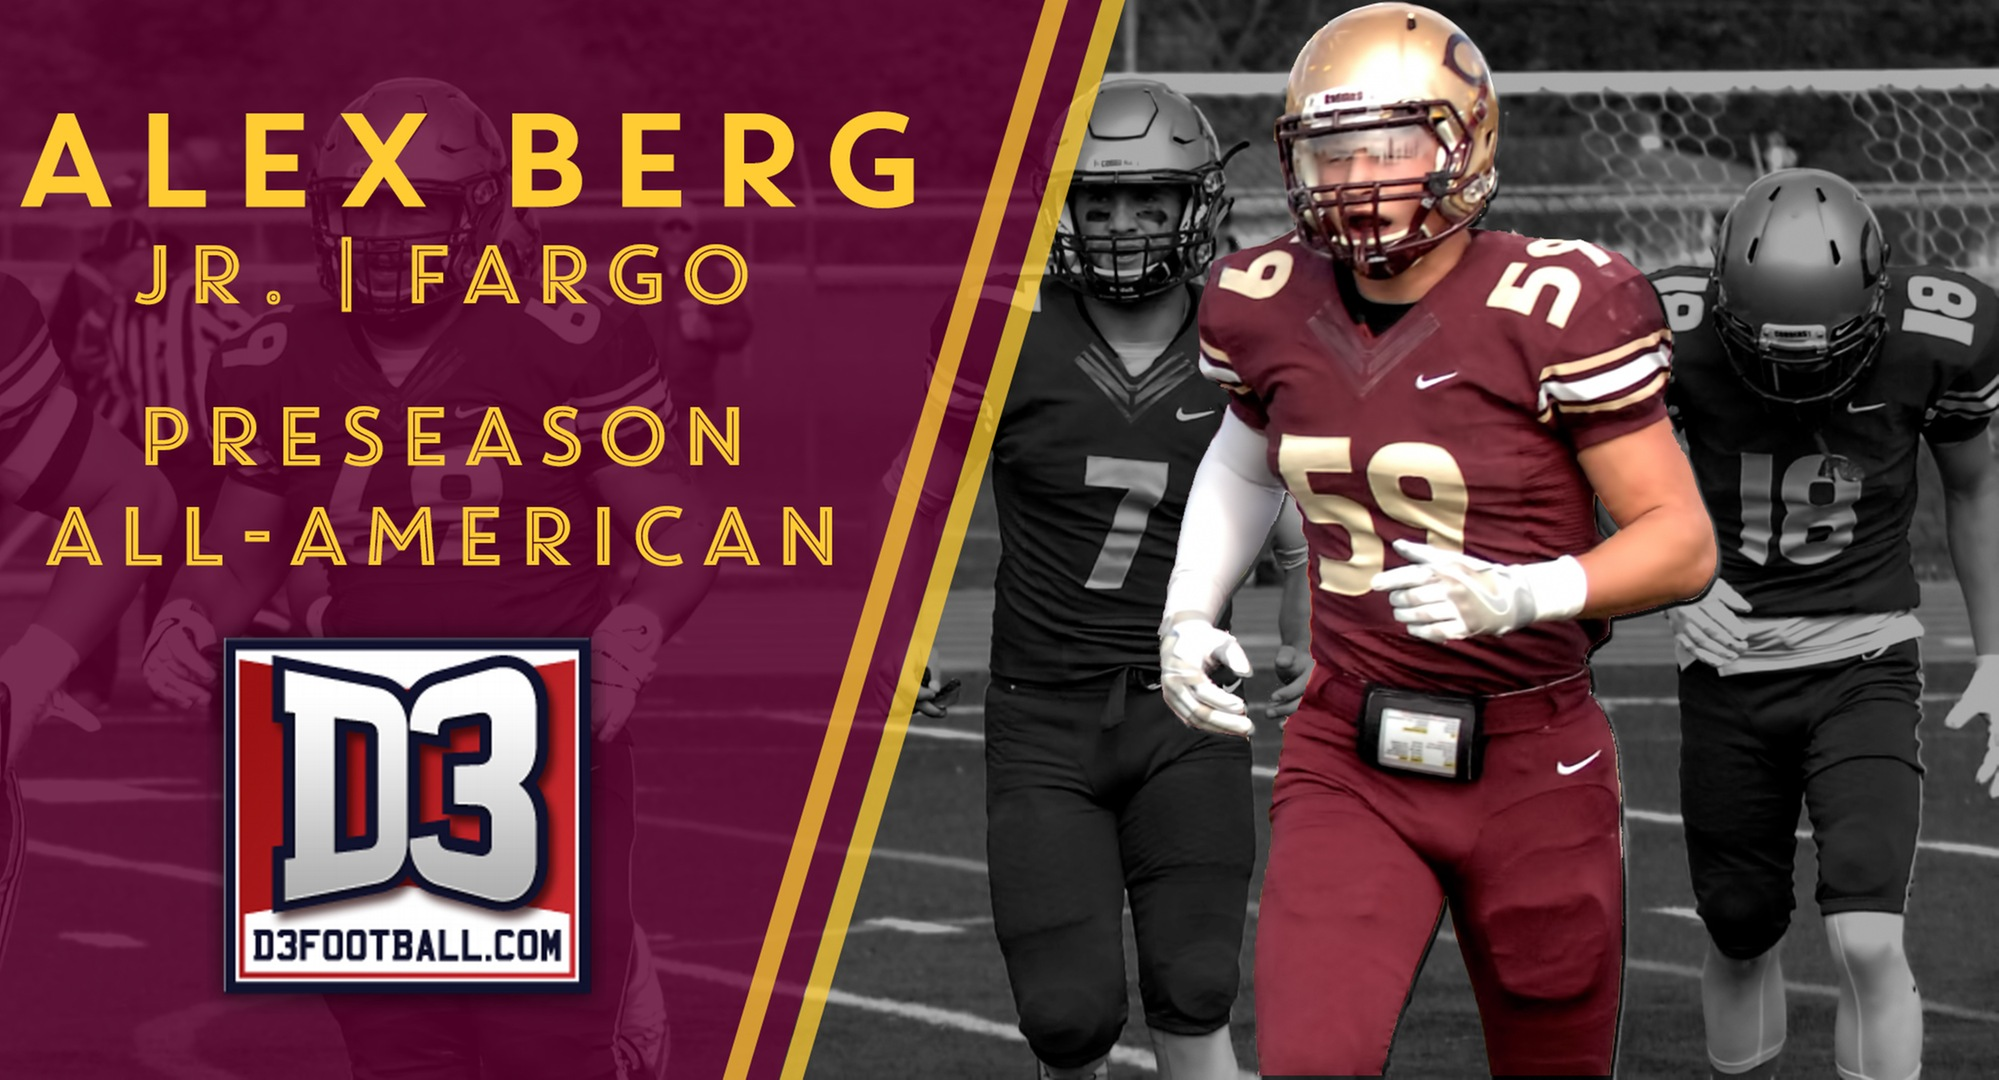 Berg Named Preseason All-American